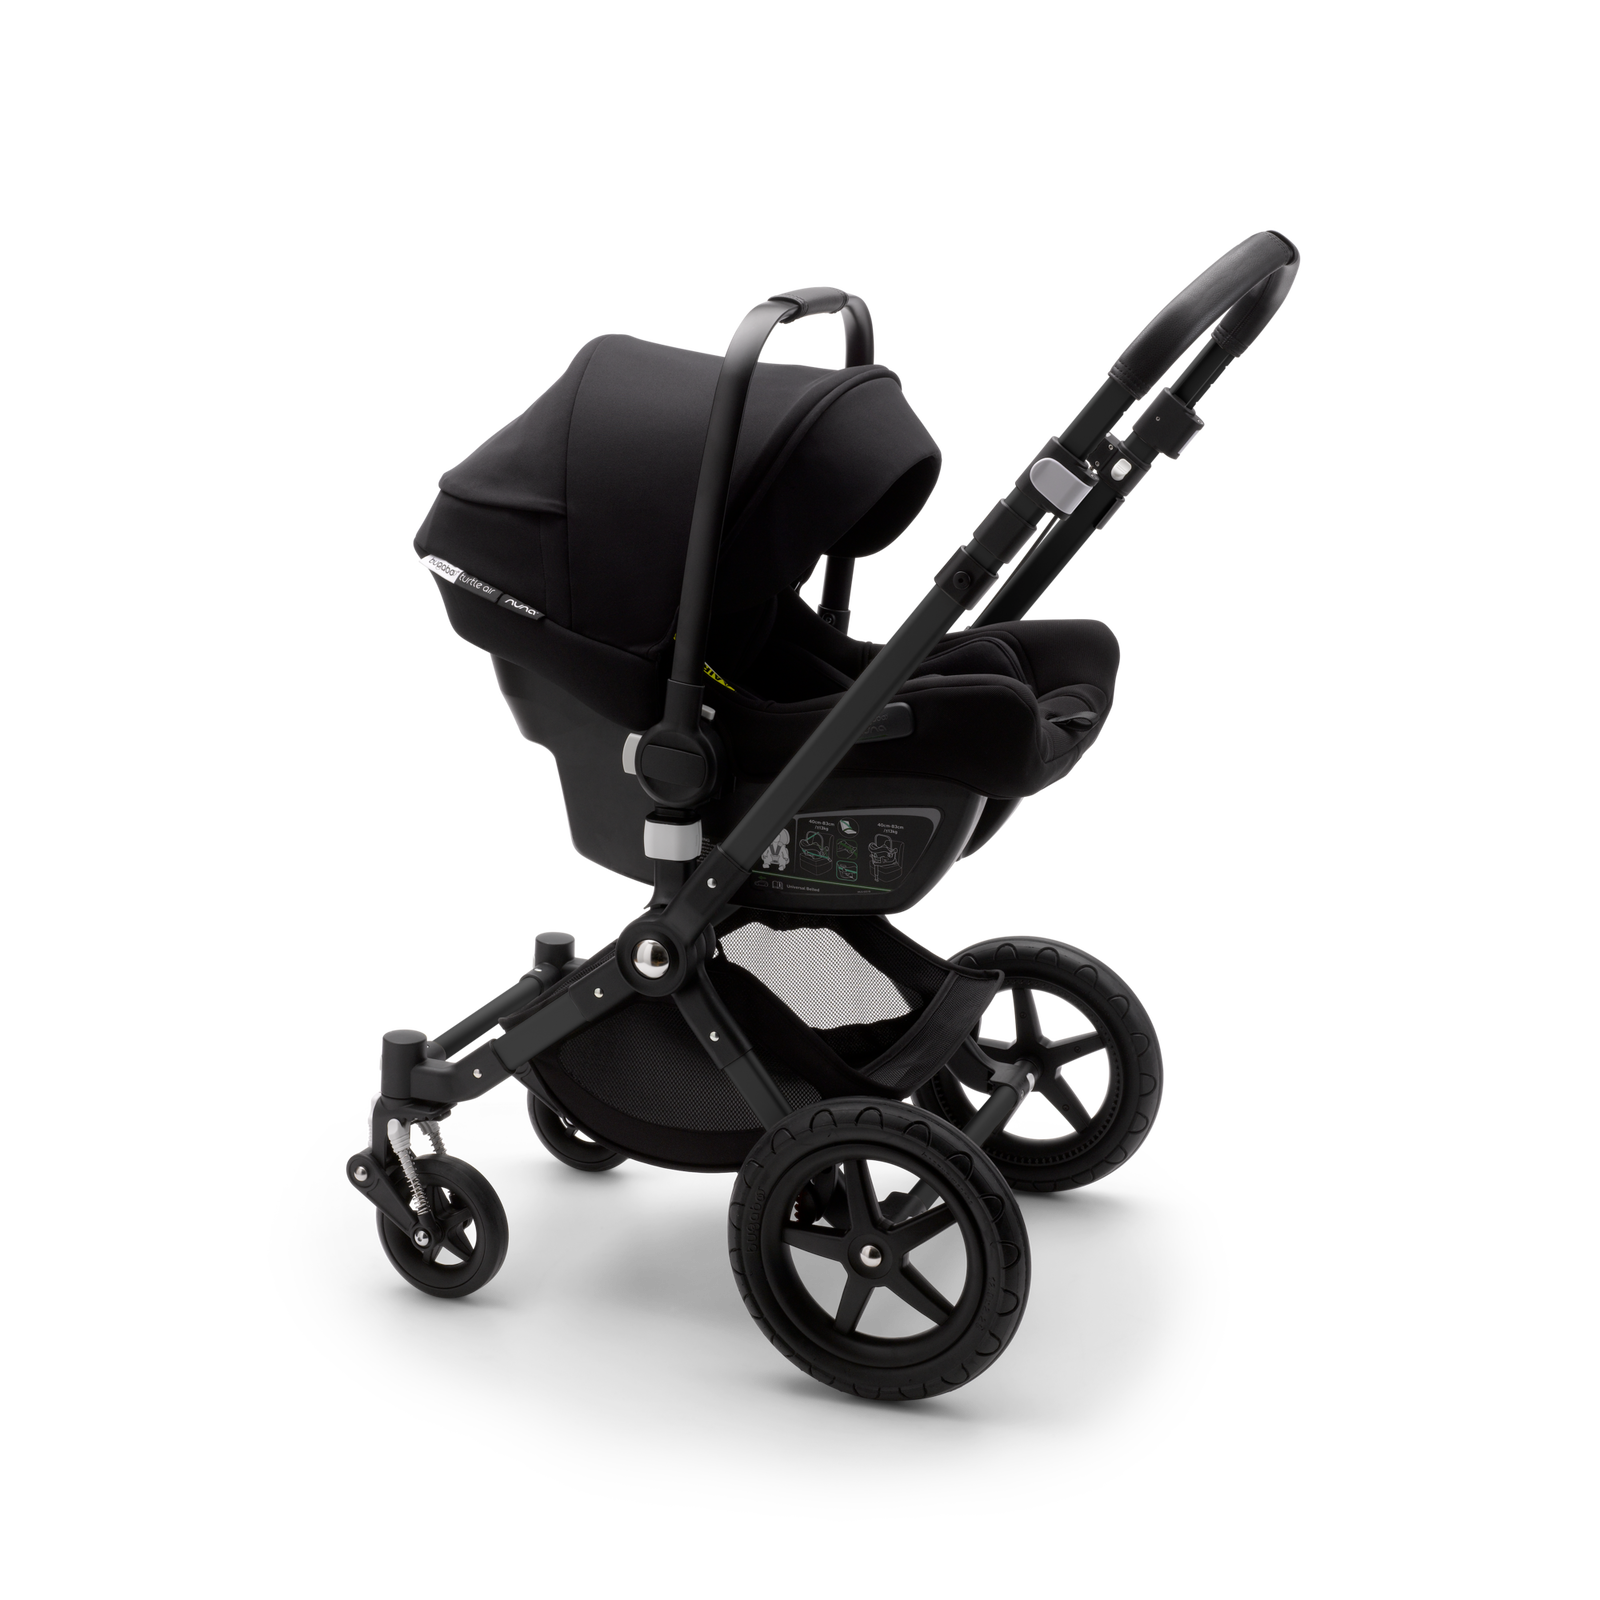 Silla de coche Bugaboo Turtle Air by Nuna